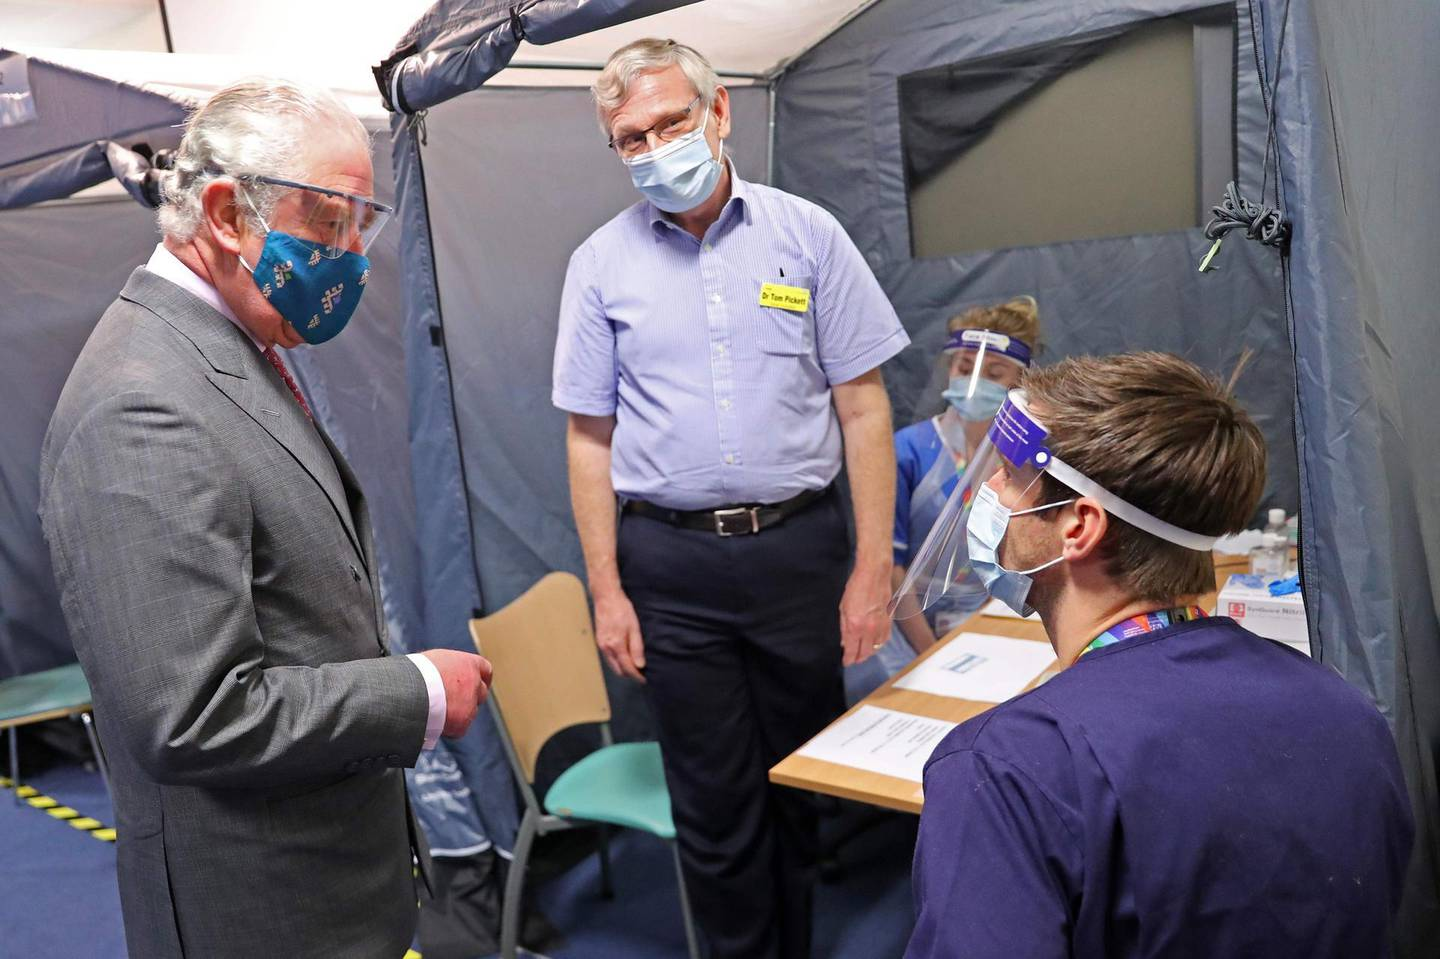 Britain's Prince Charles, Prince of Wales (R) meets with NHS staff involved in the vaccination programme during a visit to the Gloucestershire Vaccination Centre at Gloucestershire Royal Hospital on December 17, 2020 in Gloucester, central England / AFP / POOL / Chris Jackson